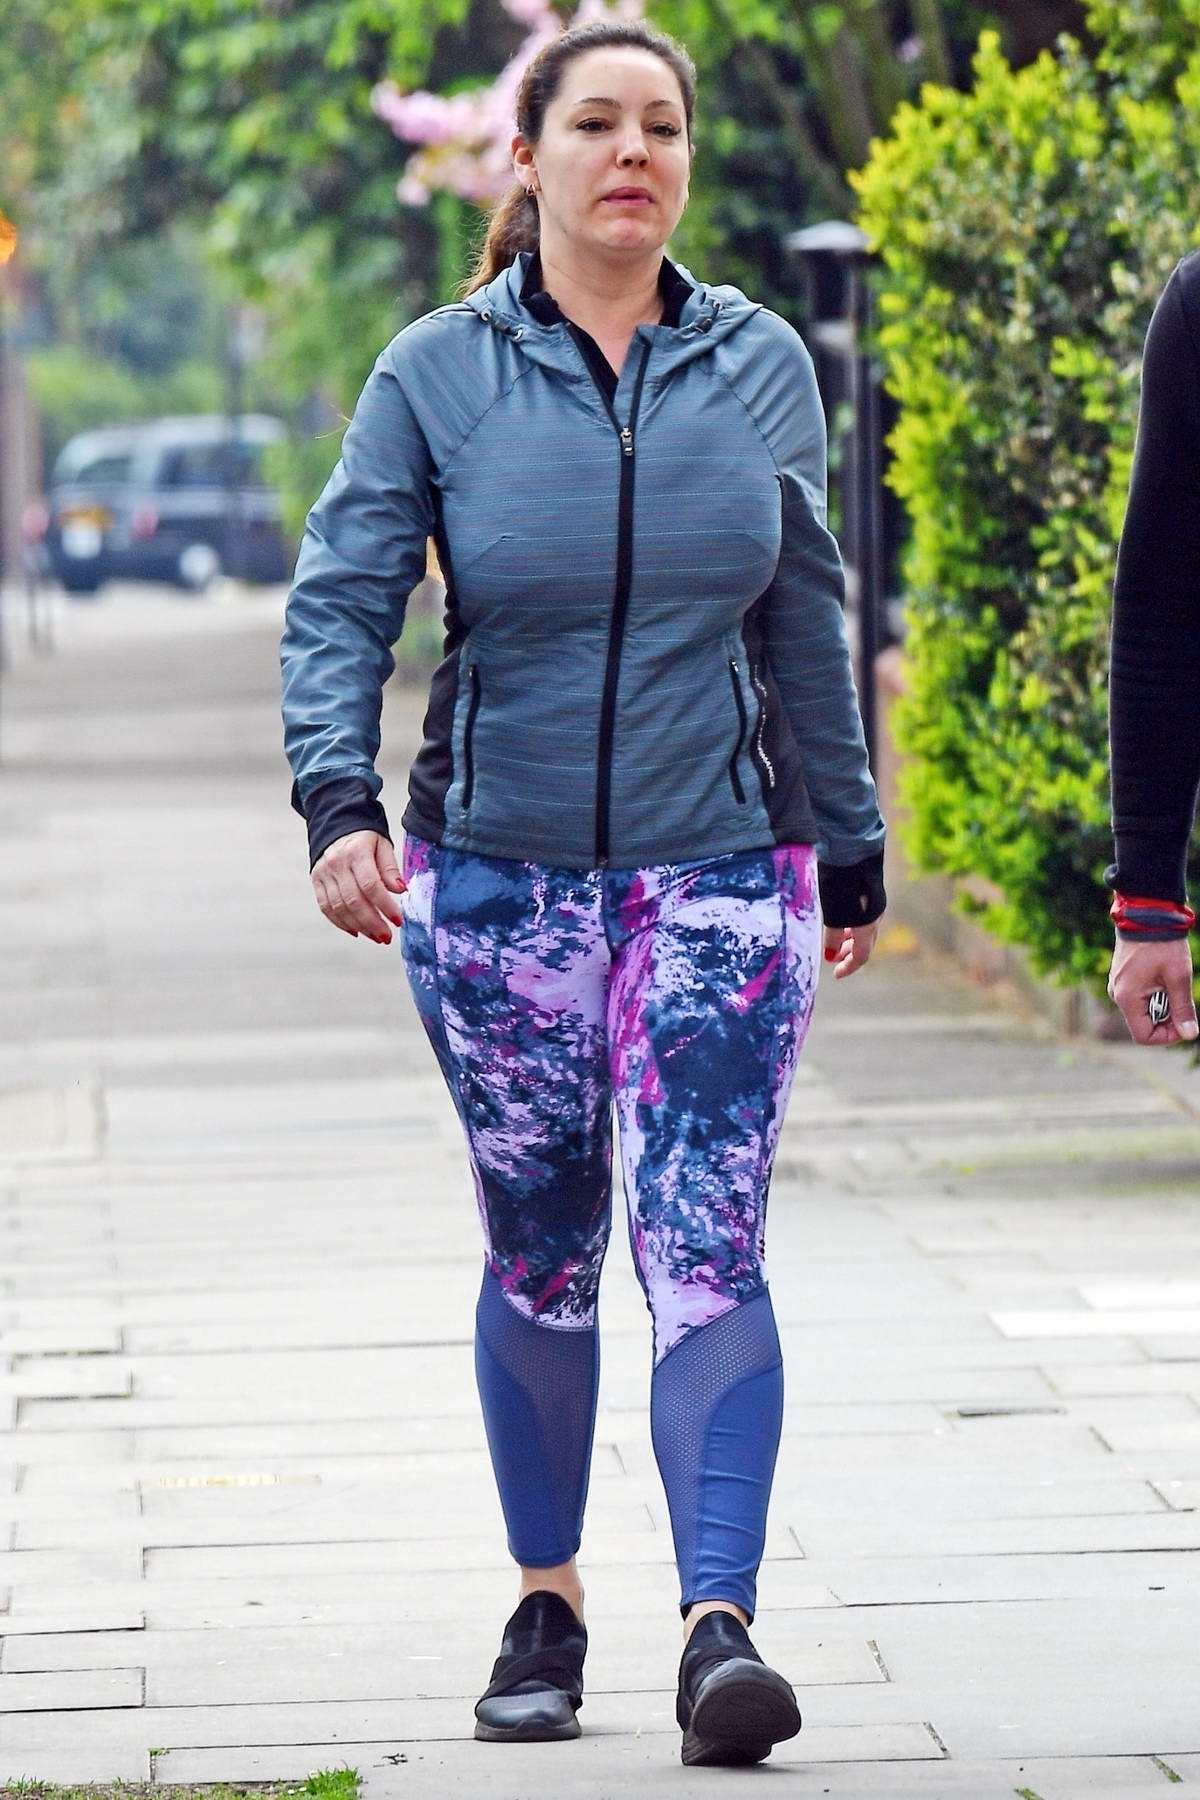 Kelly Brook sports a hoodie and colorful leggings while out for a walk with Jeremy Parisi in London, UK